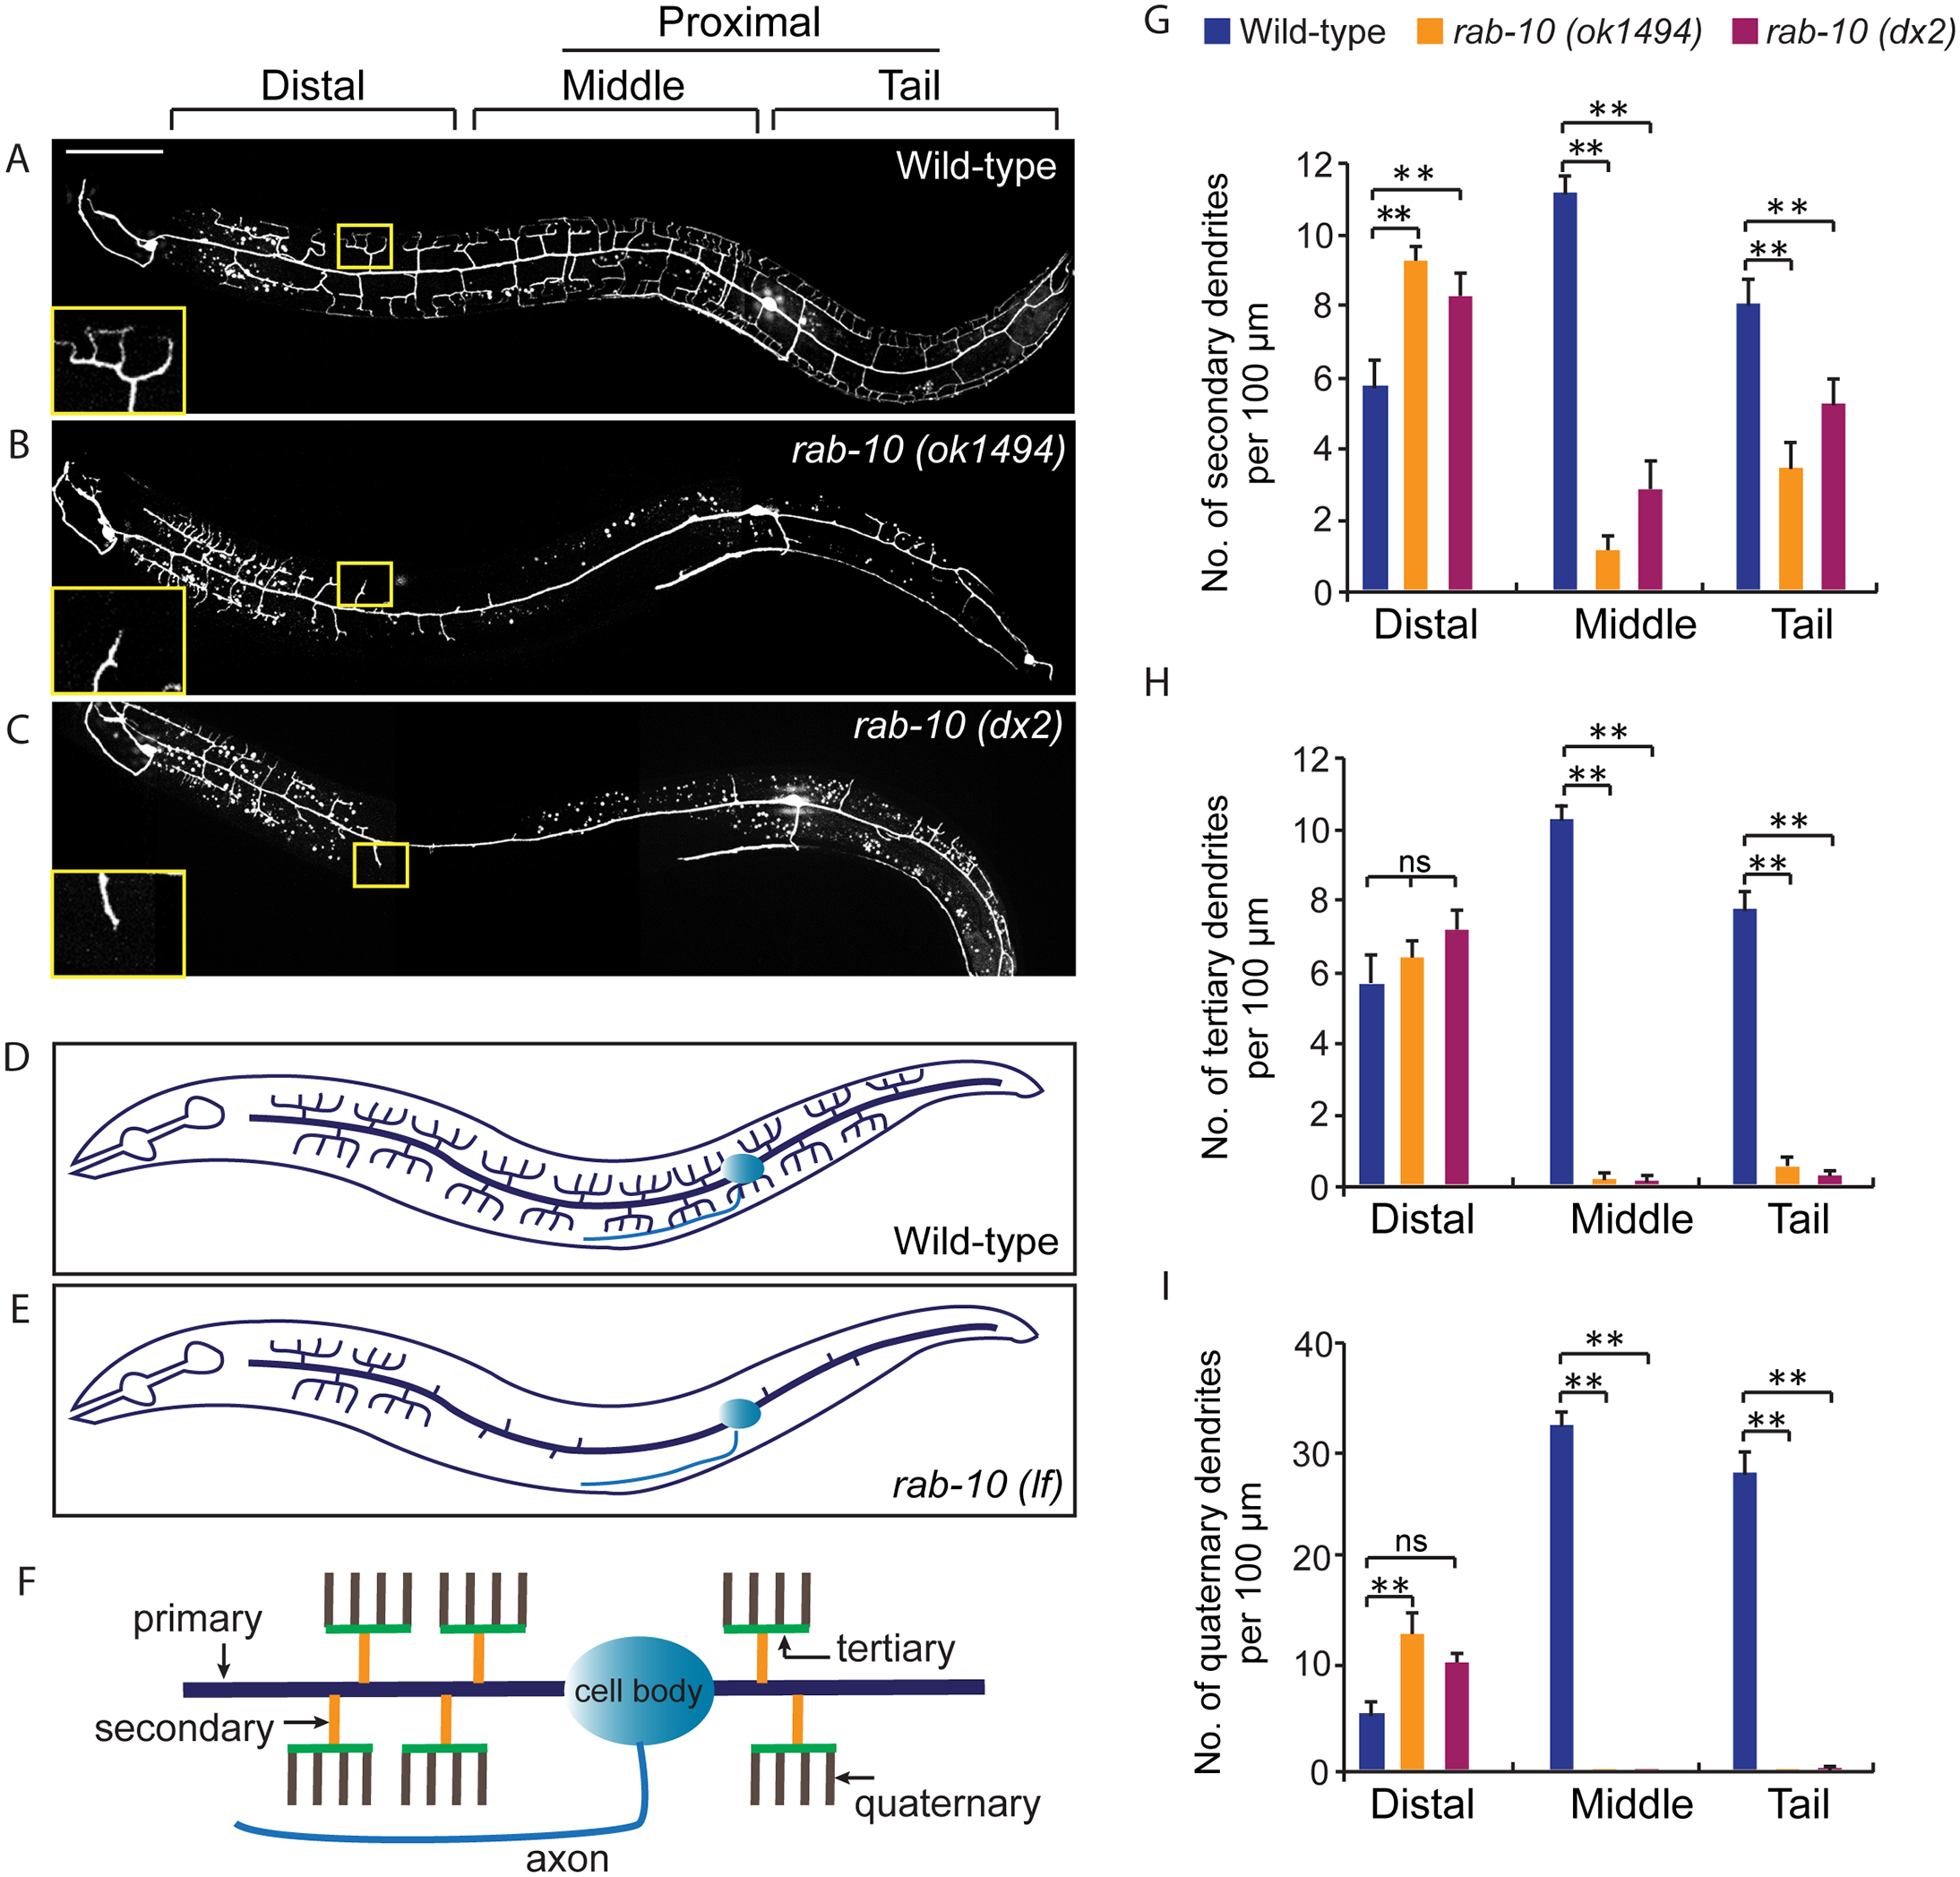 RAB-10 promotes formation of proximal PVD dendritic arbors.